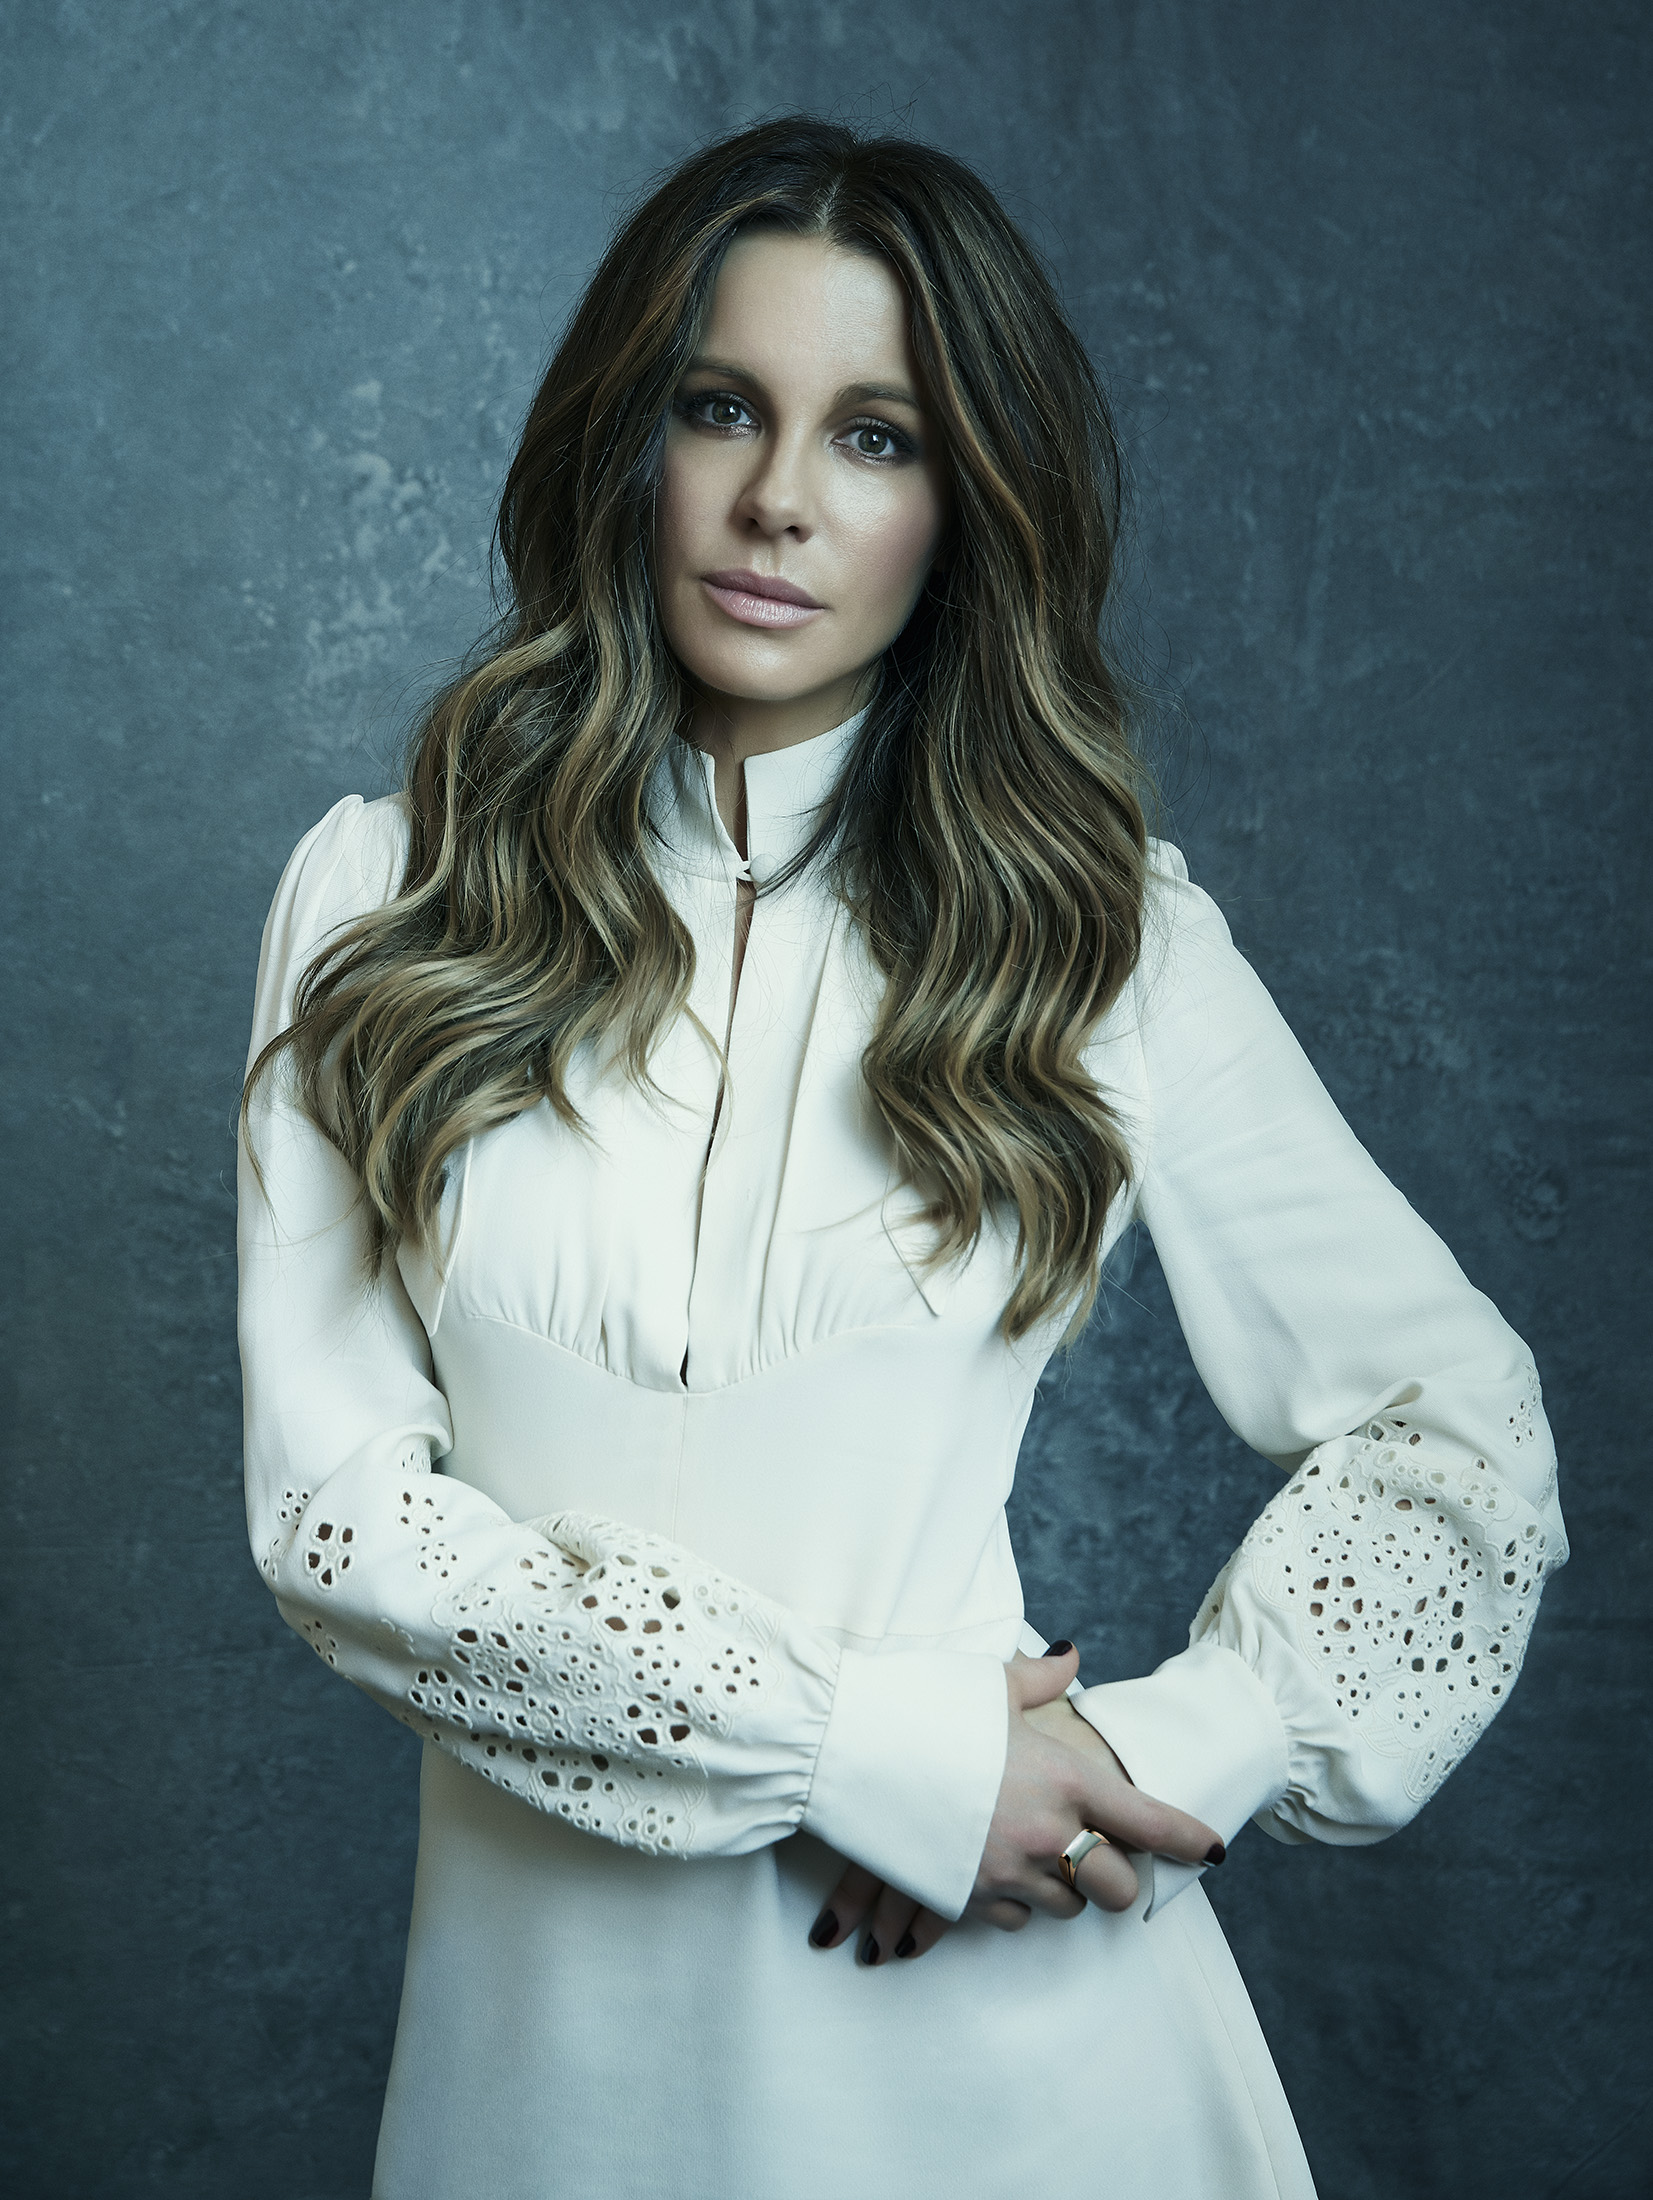 Kate-Beckinsale-by-Robert-Ascroft-04